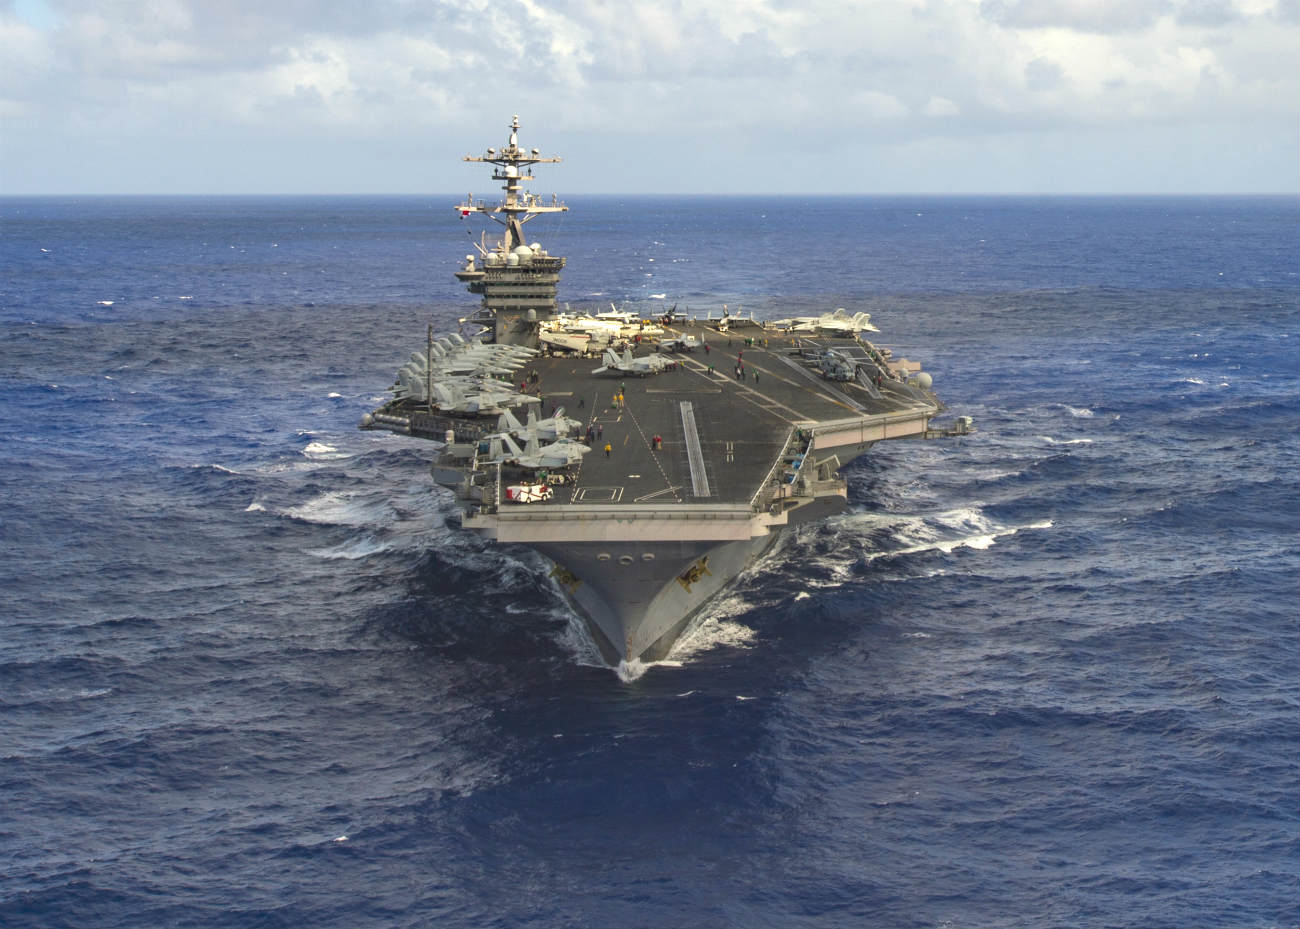 Air force aircraft carrier images